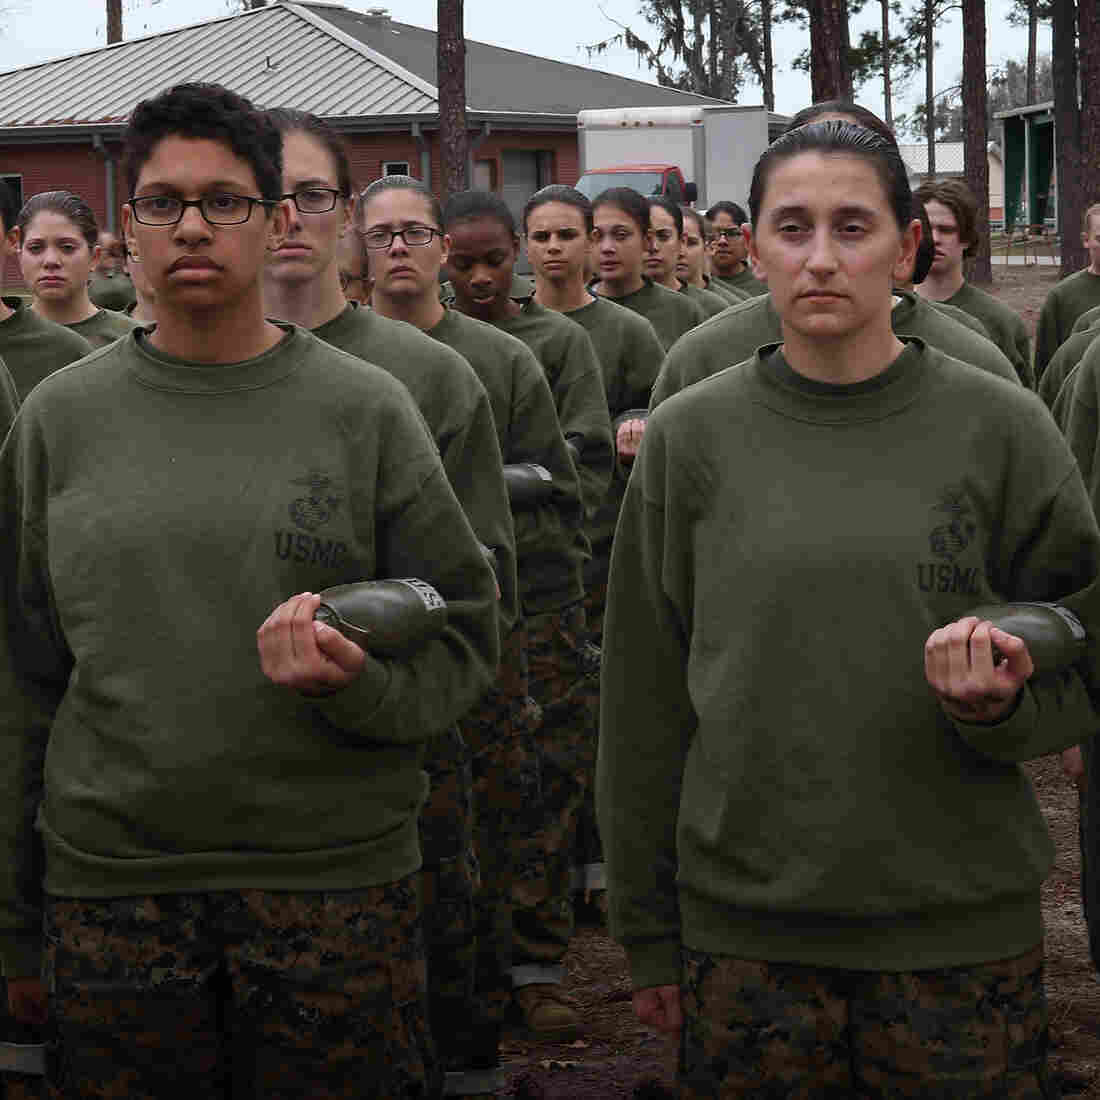 Women in the U.S. military will be integrated into front-line combat units by 2016, the Pentagon says. Here, female Marine recruits stand in formation during pugil stick training in boot camp earlier this year at Parris Island, S.C.